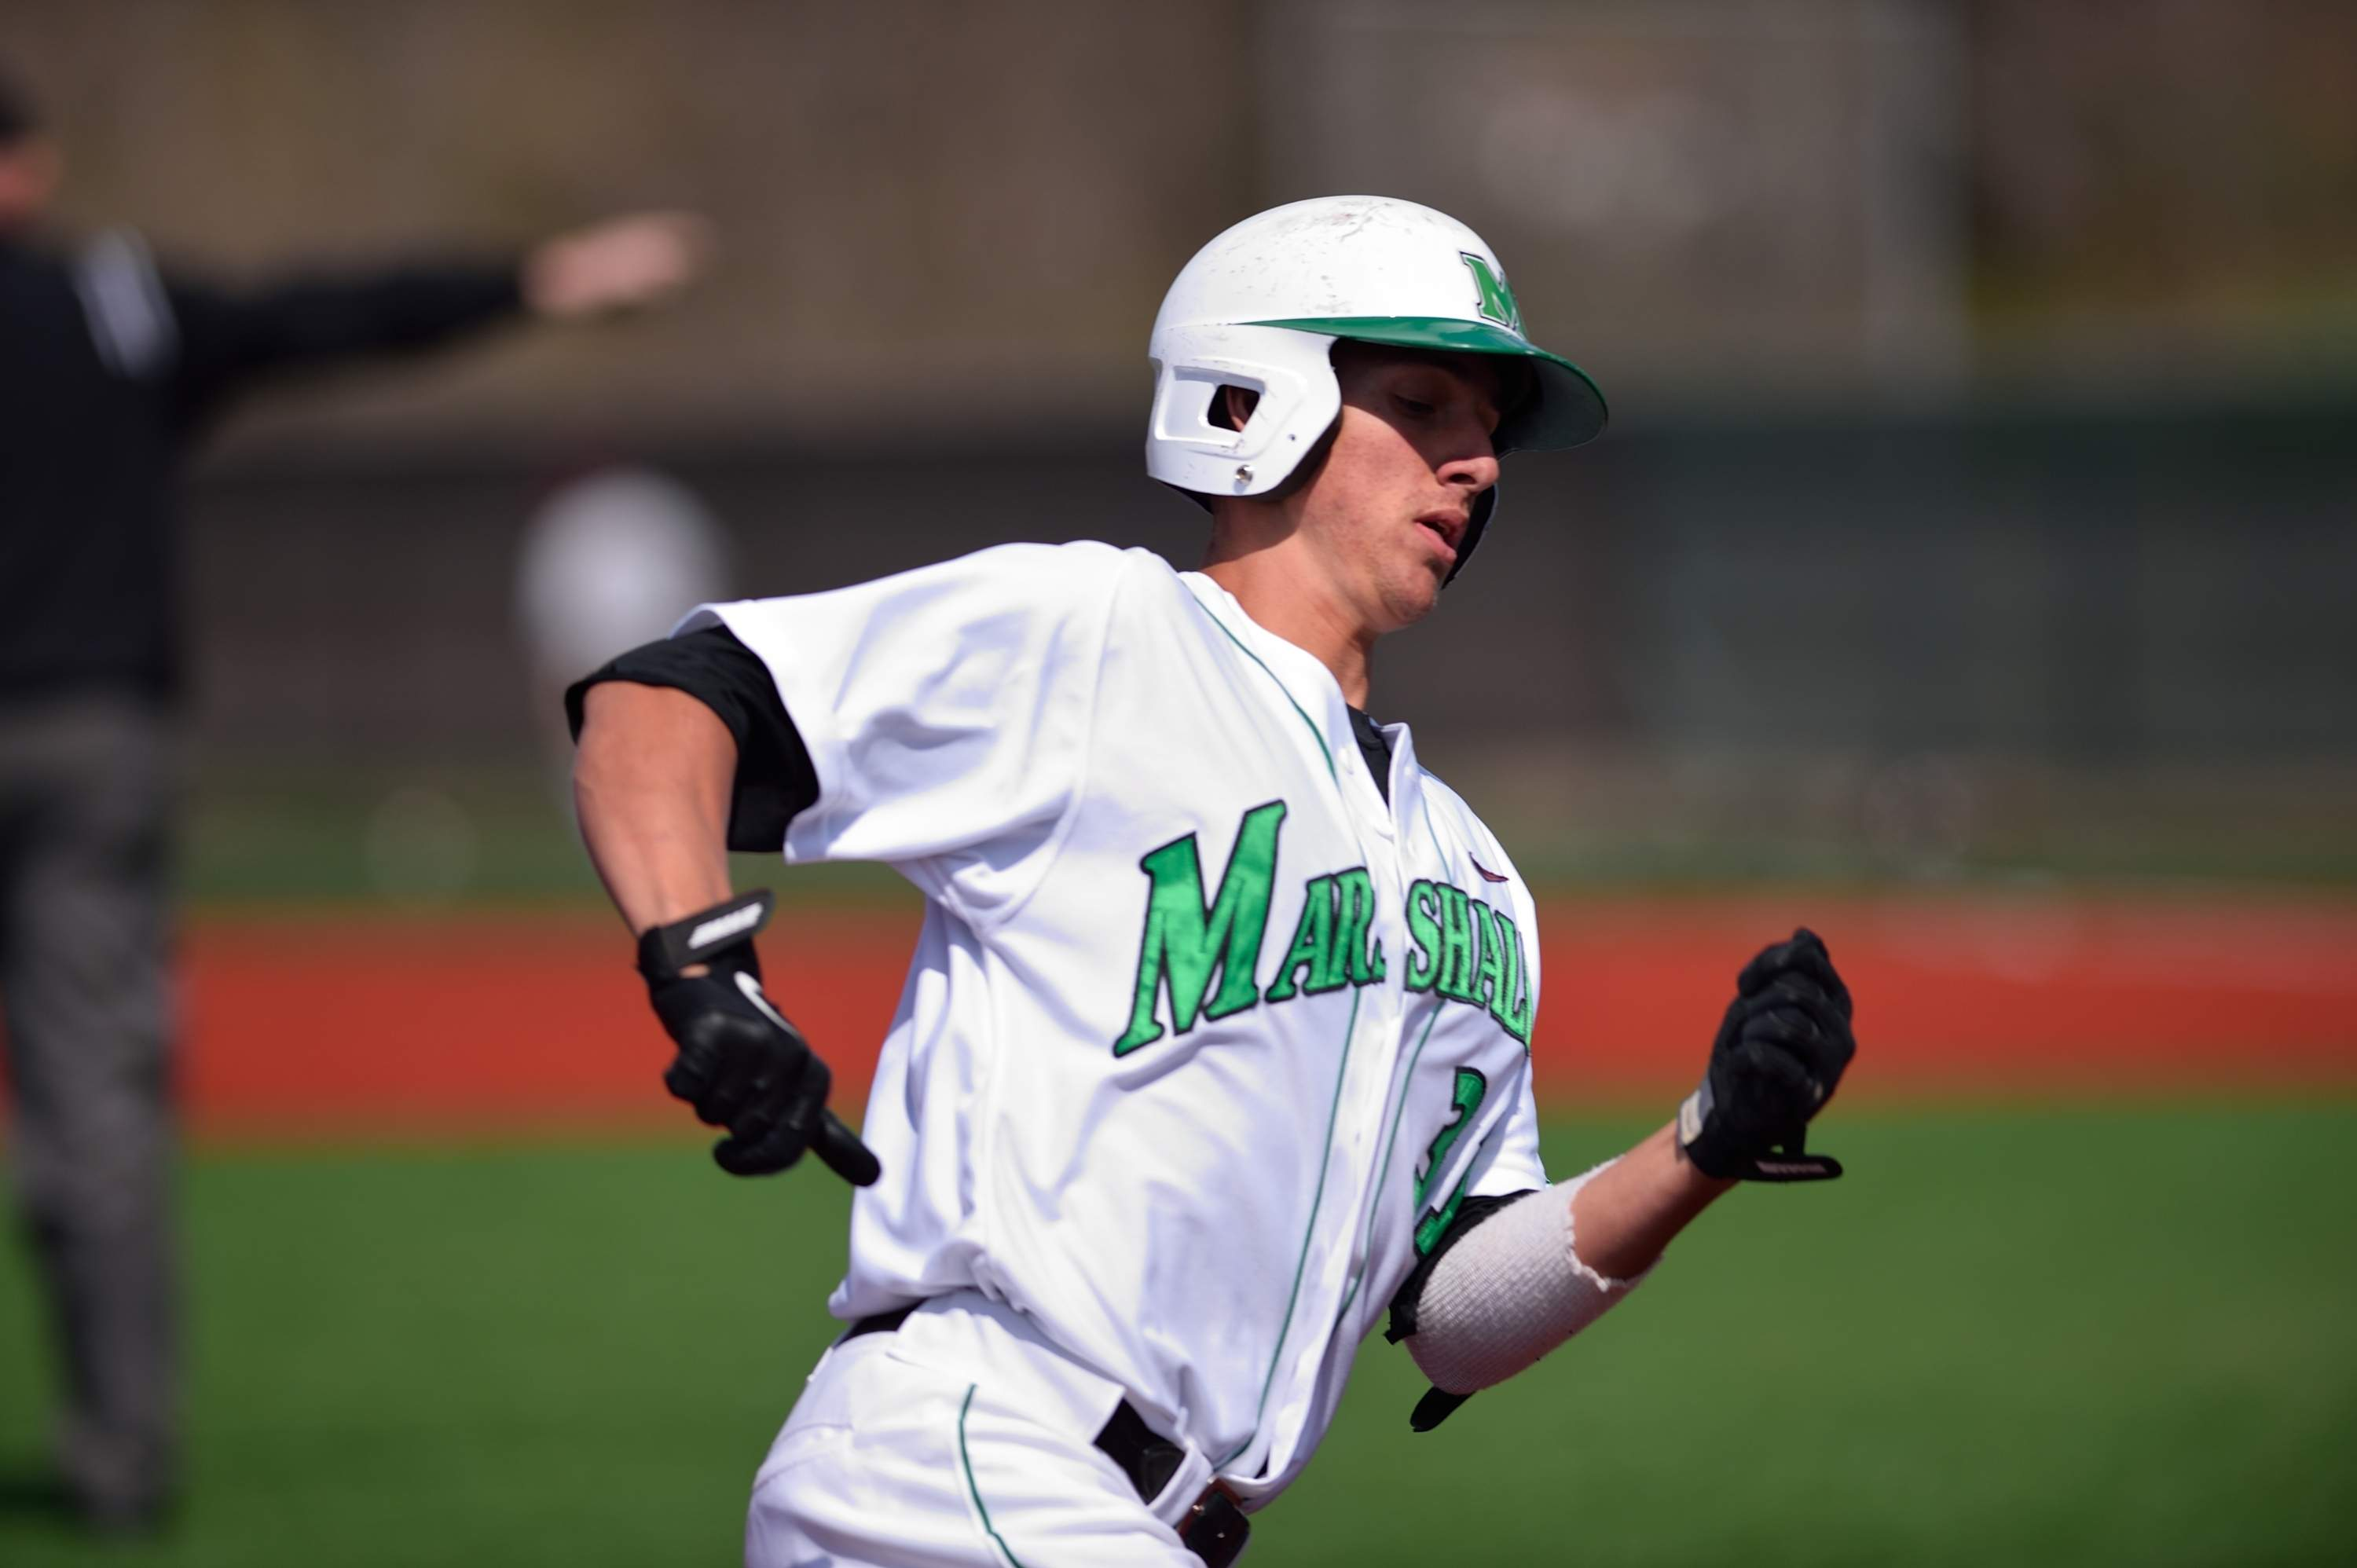 Marshall University junior outfielder Corey Bird takes the field during a game last season.